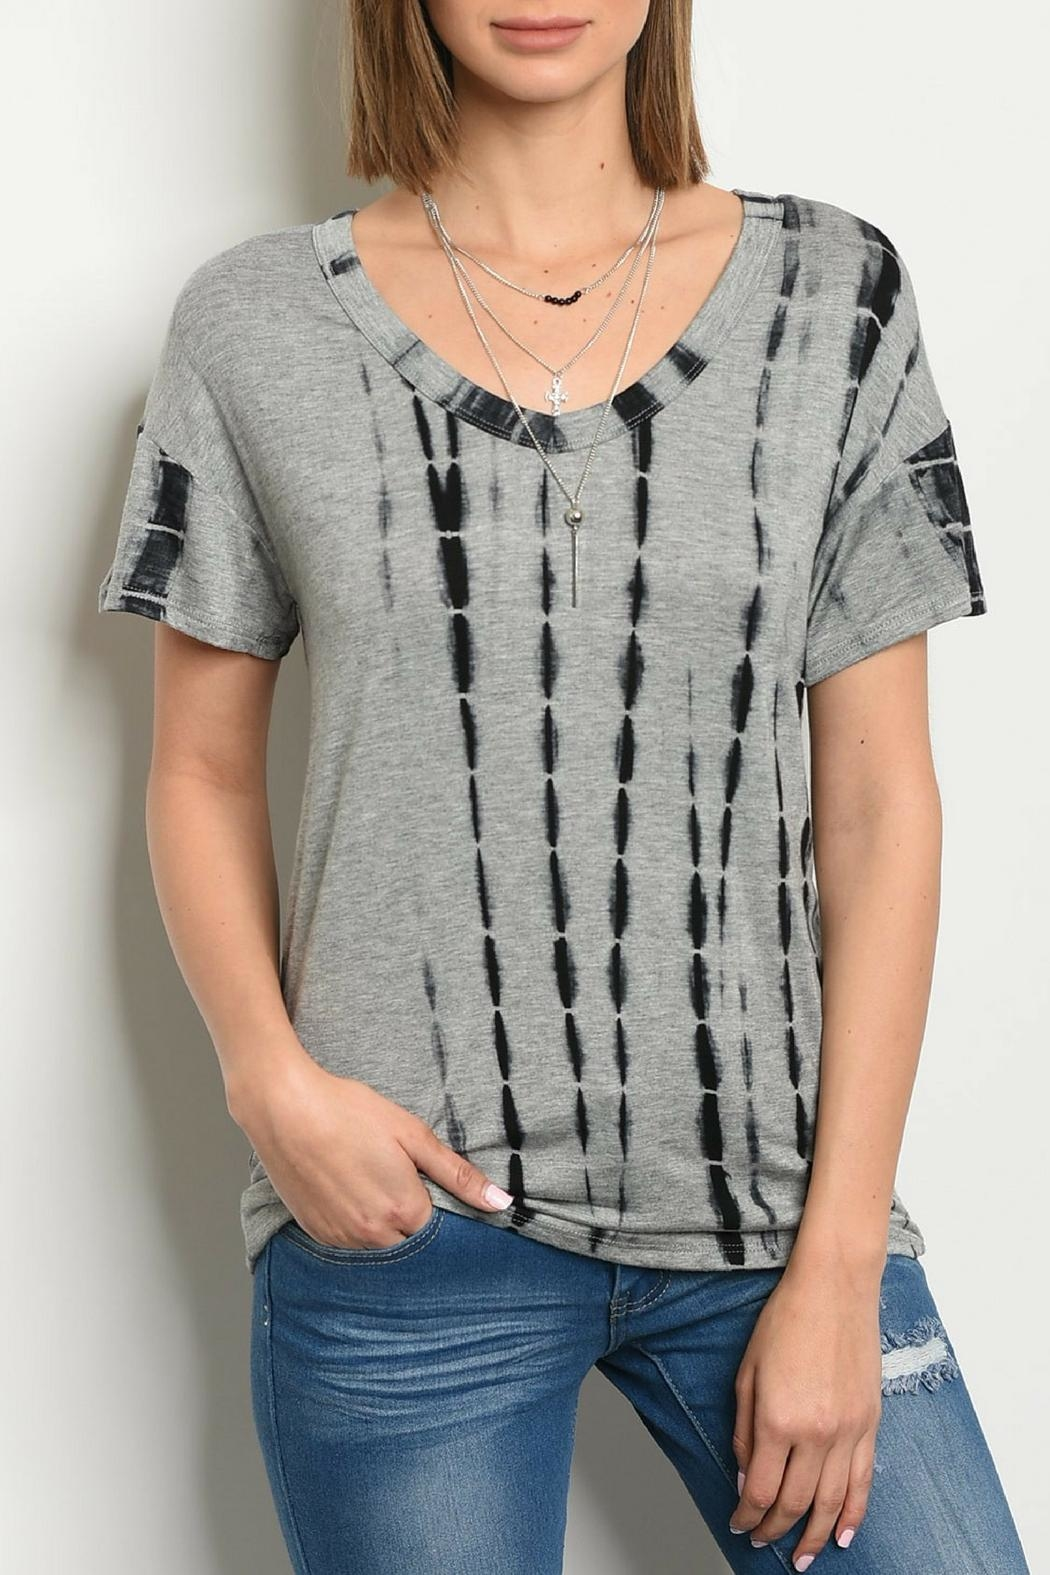 Sweet Claire Gray Tie-Dye Top - Main Image